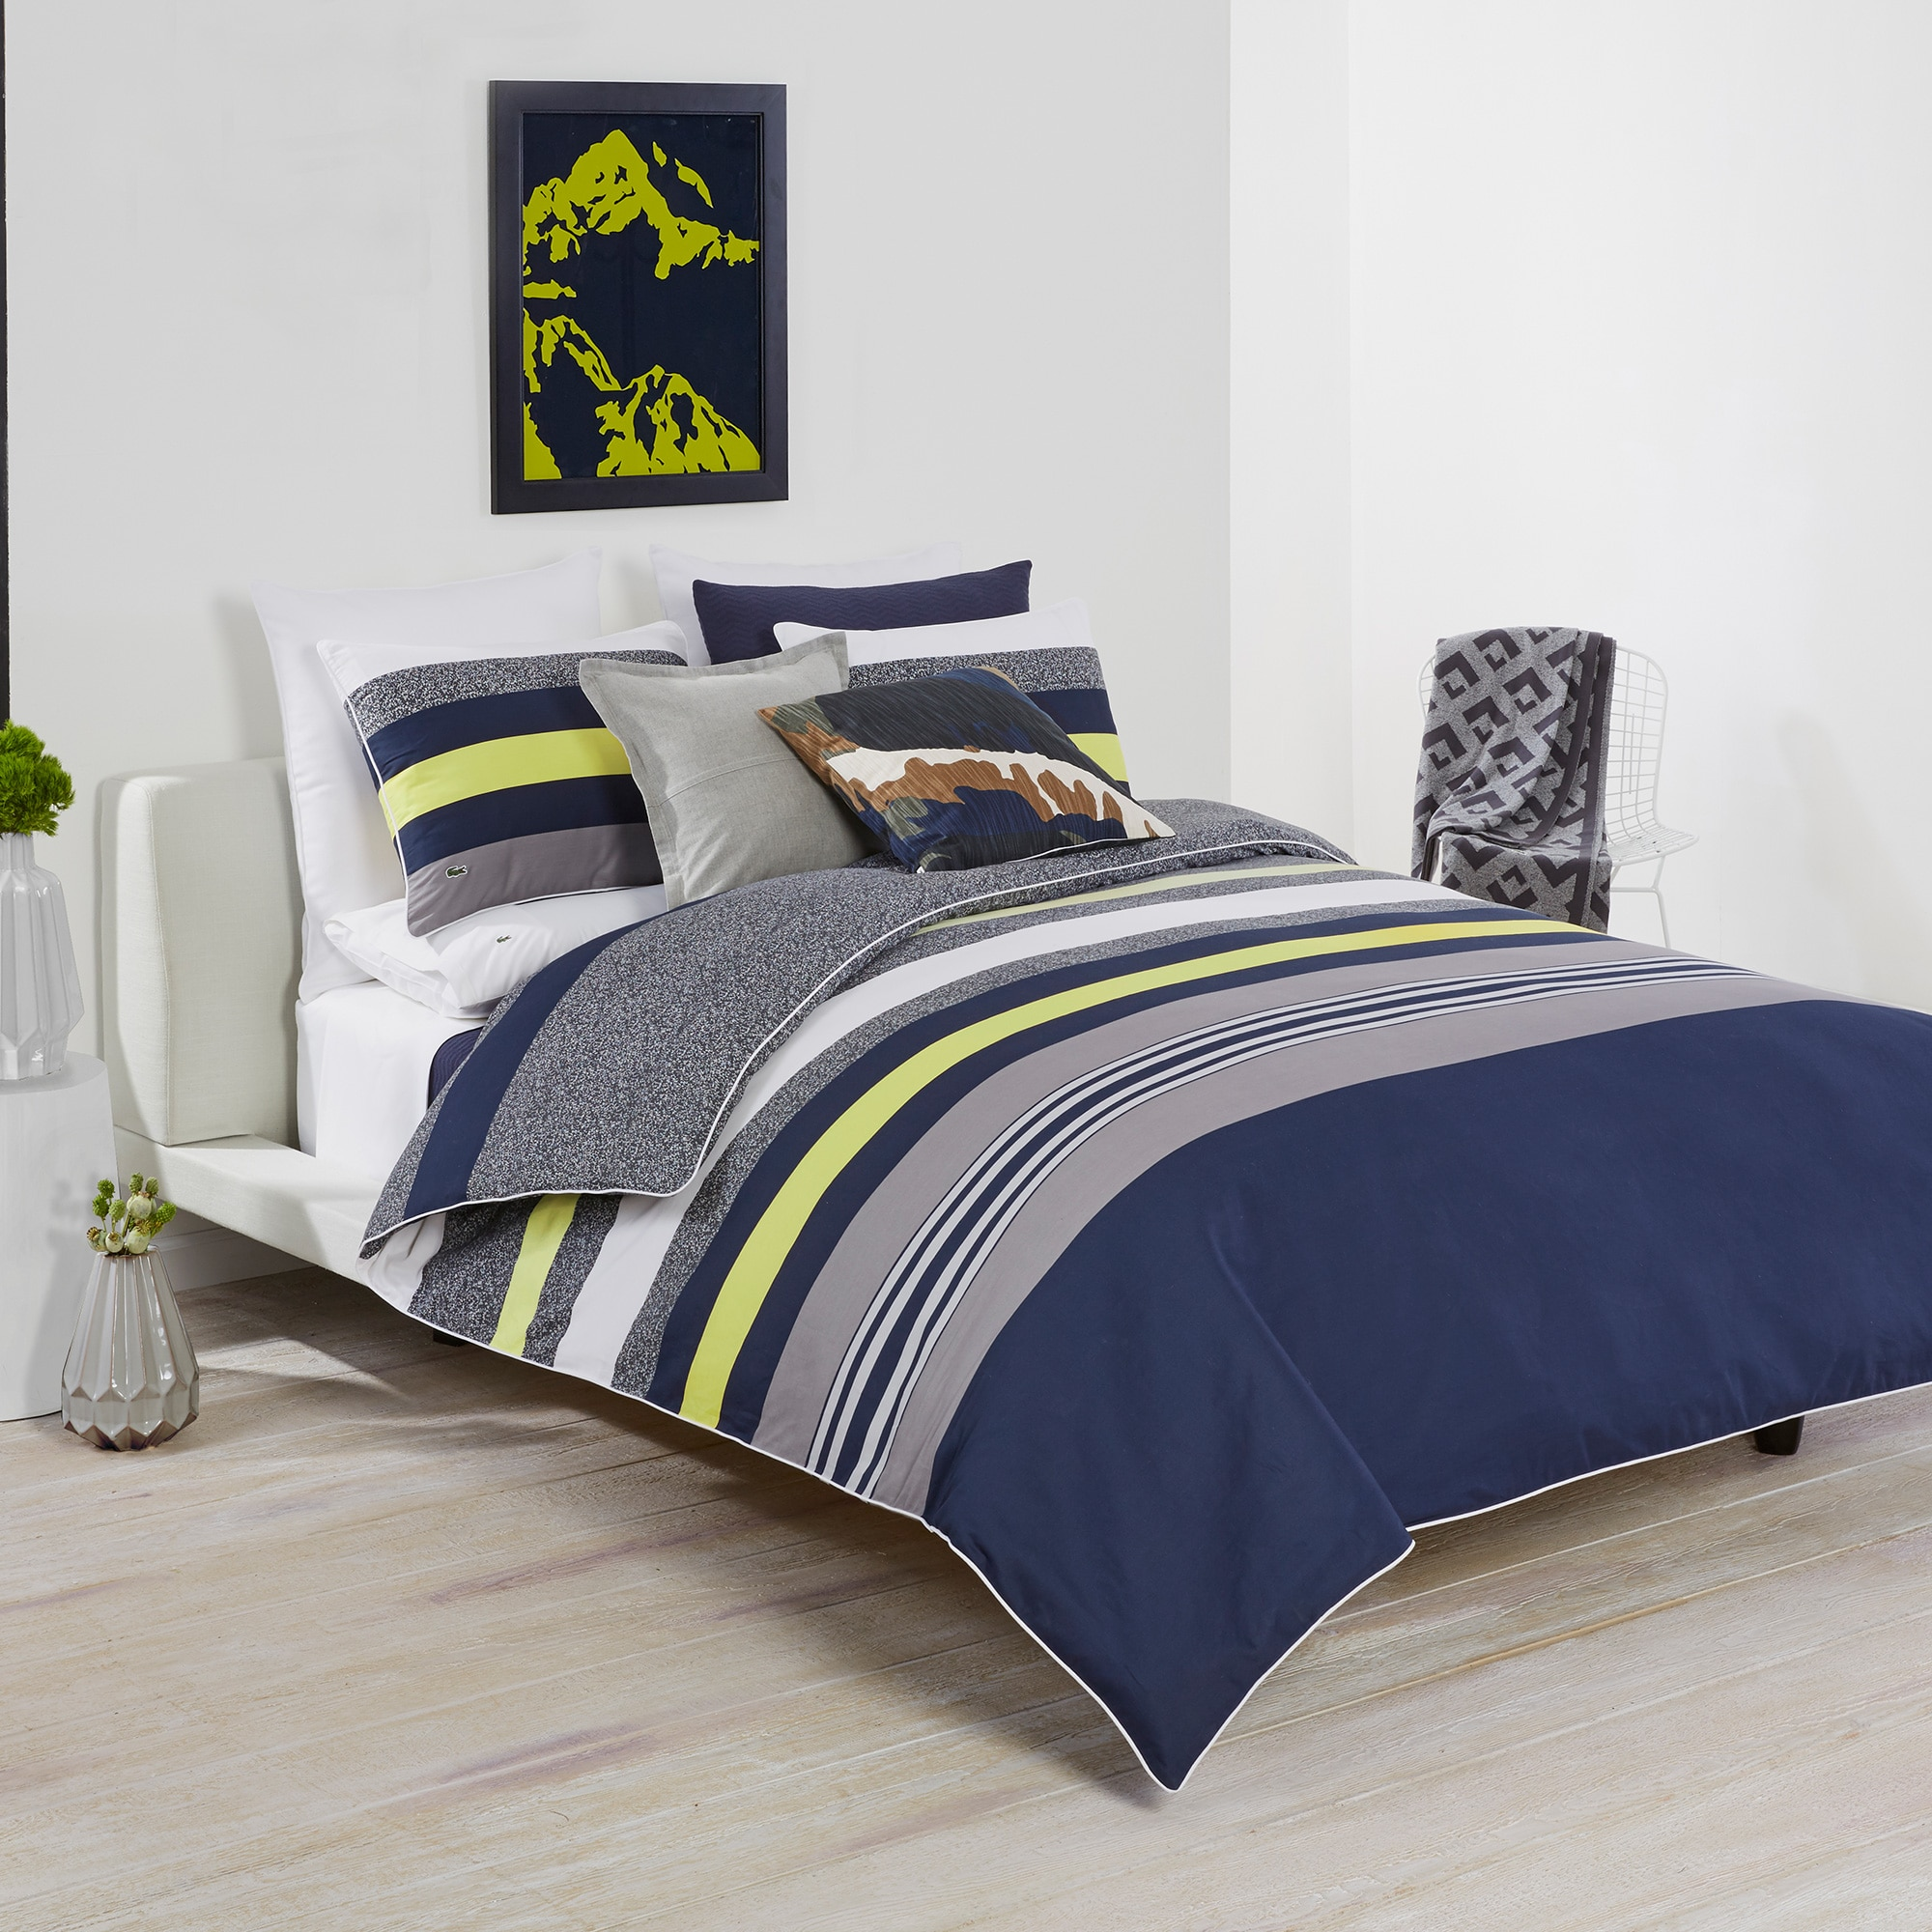 Tigne Full/Queen Duvet Set